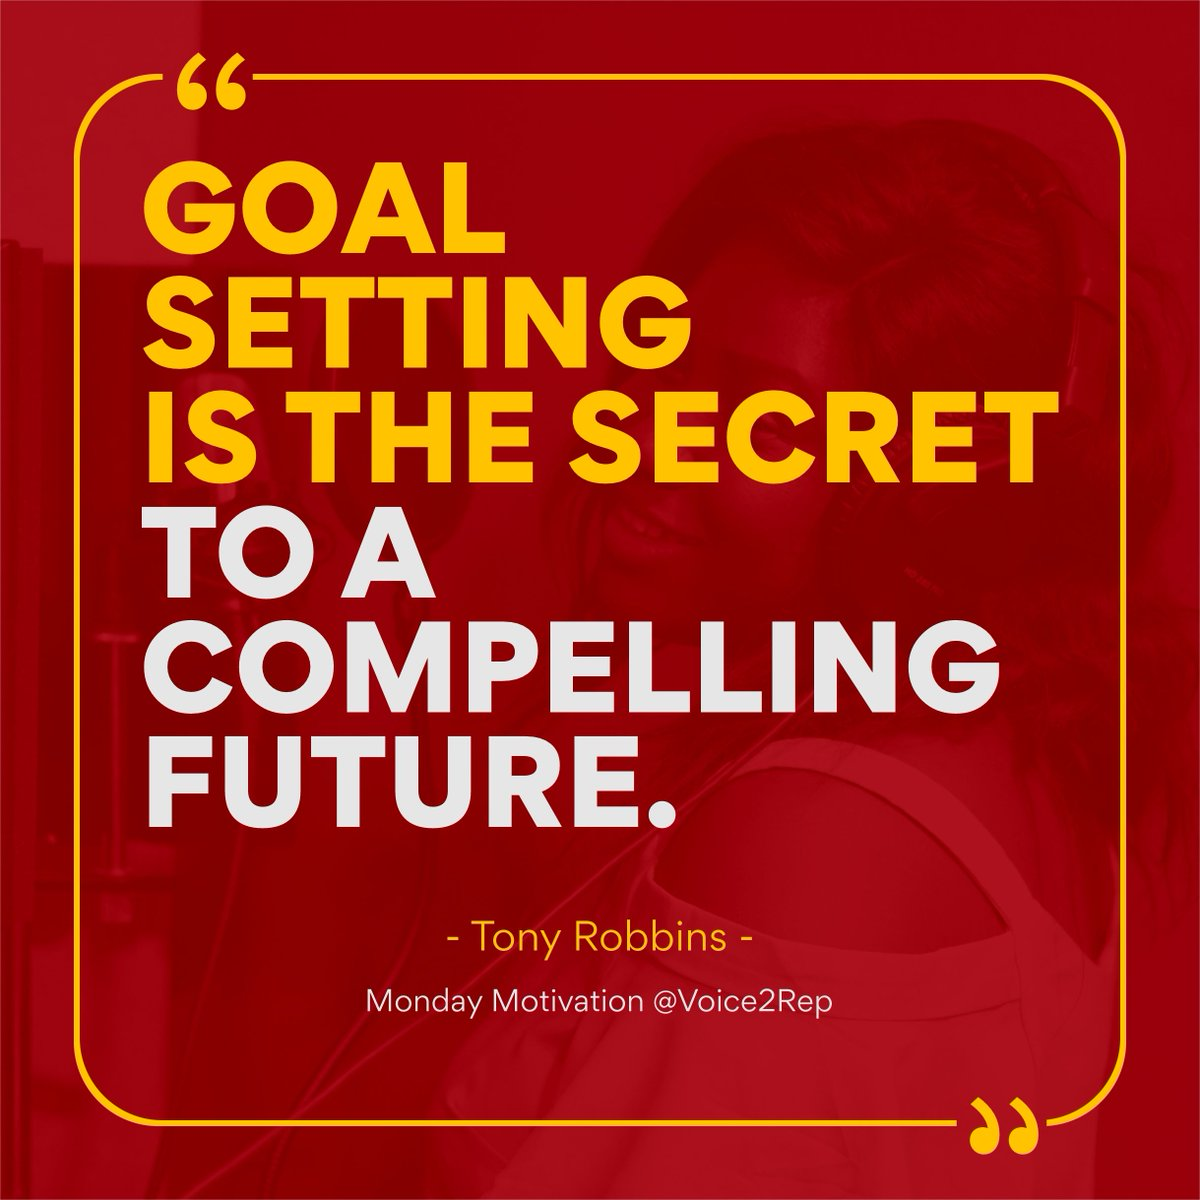 2020 may not have been the best year, but do not let this turn you off from setting your goals for 2021. This will guide you in being deliberate about your life actions.  #mondaythoughts #MondayMotivation